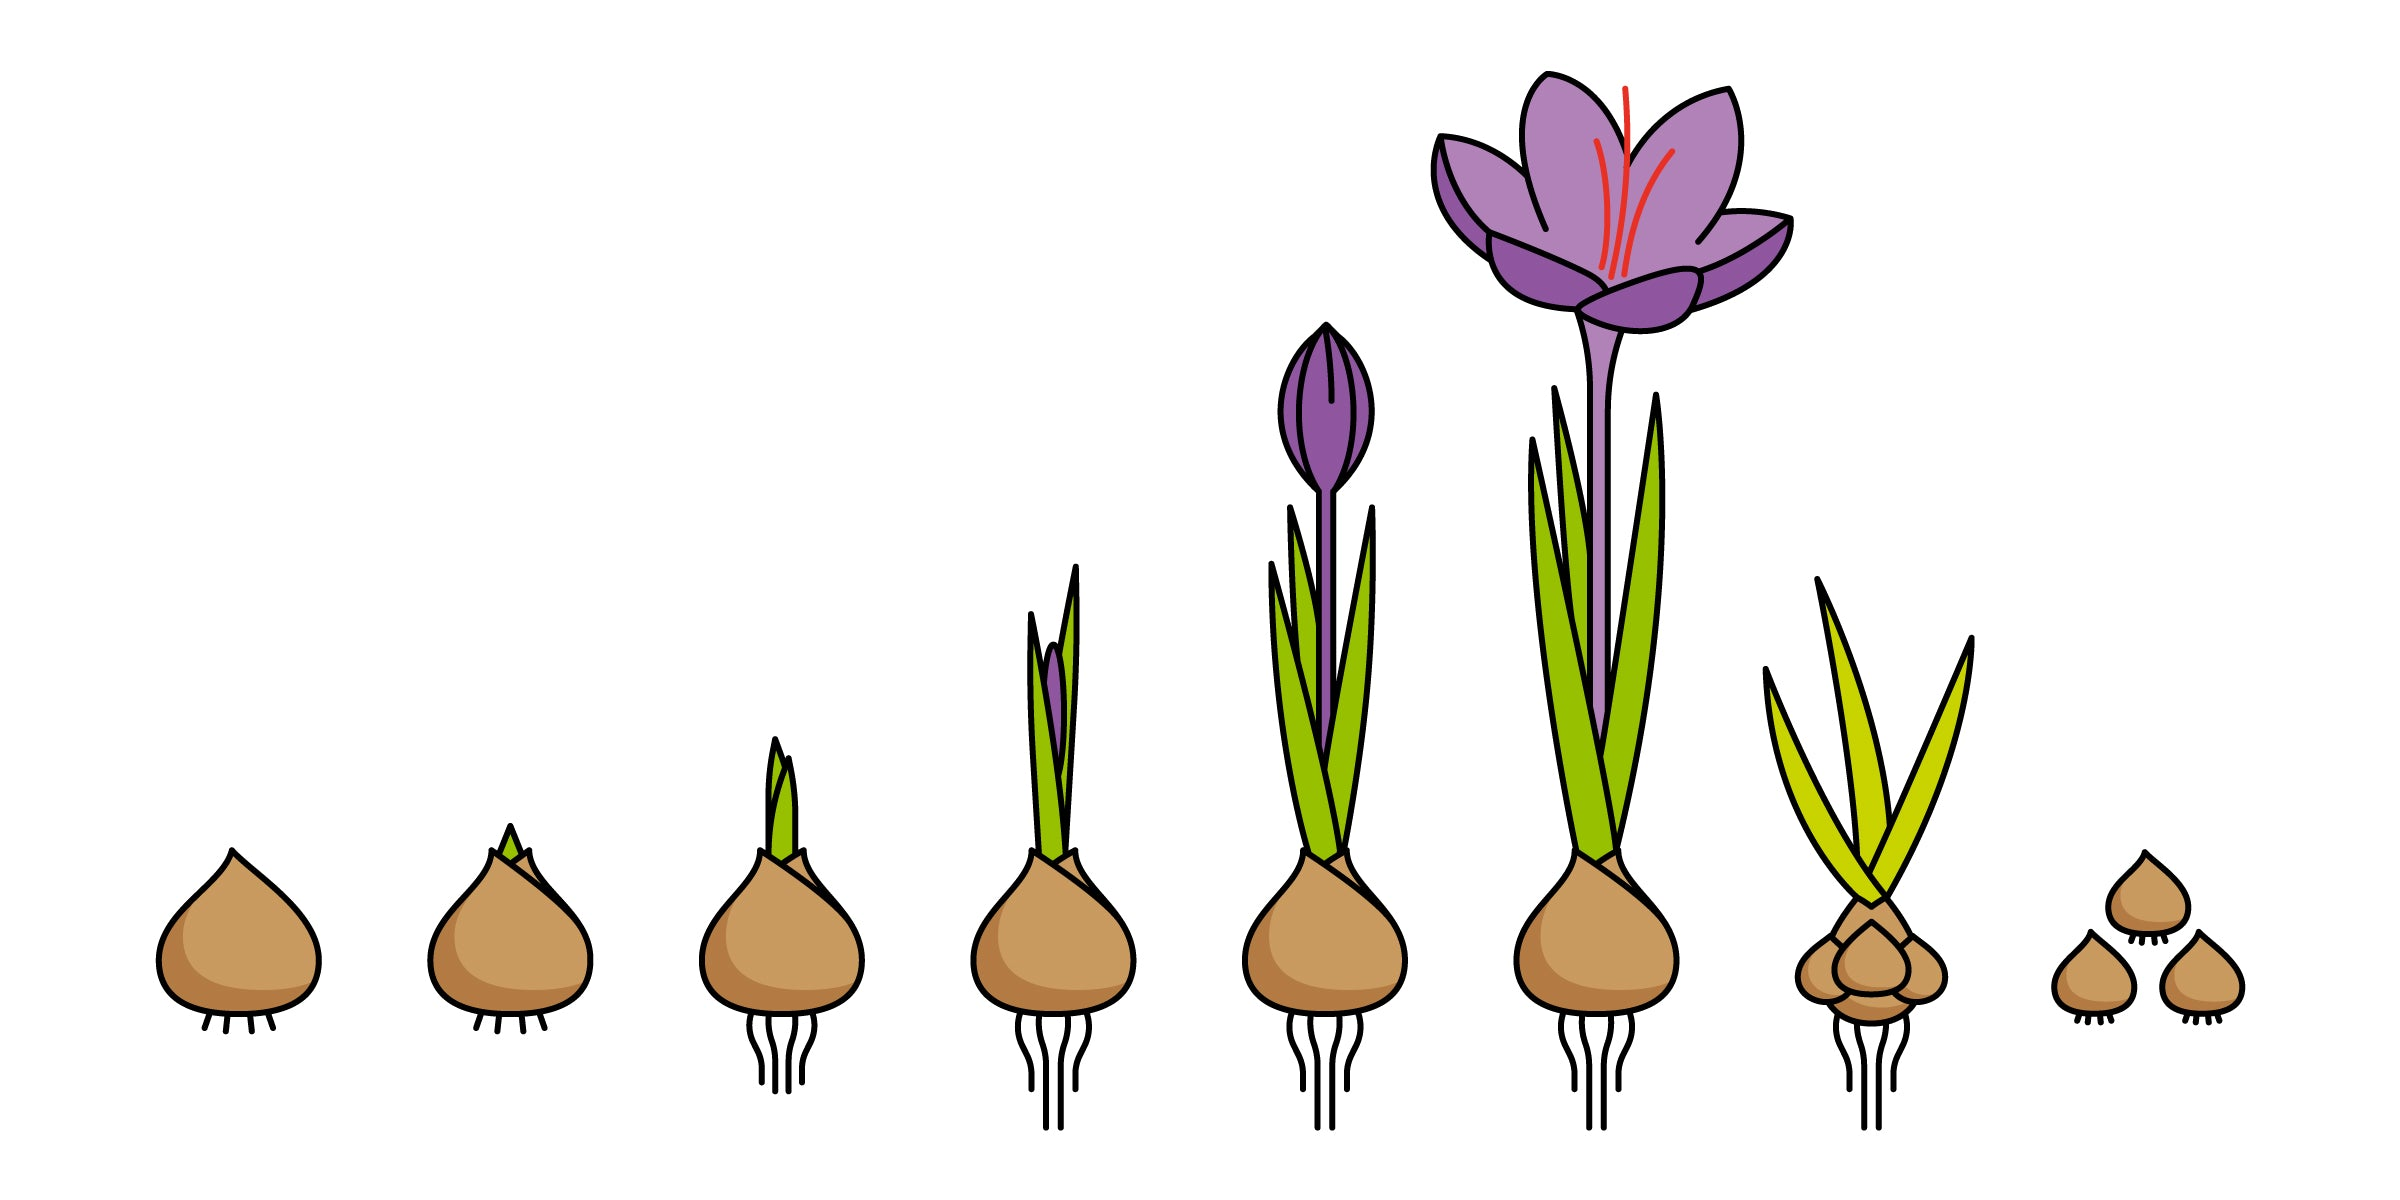 Saffron Crocus sativus reproduction